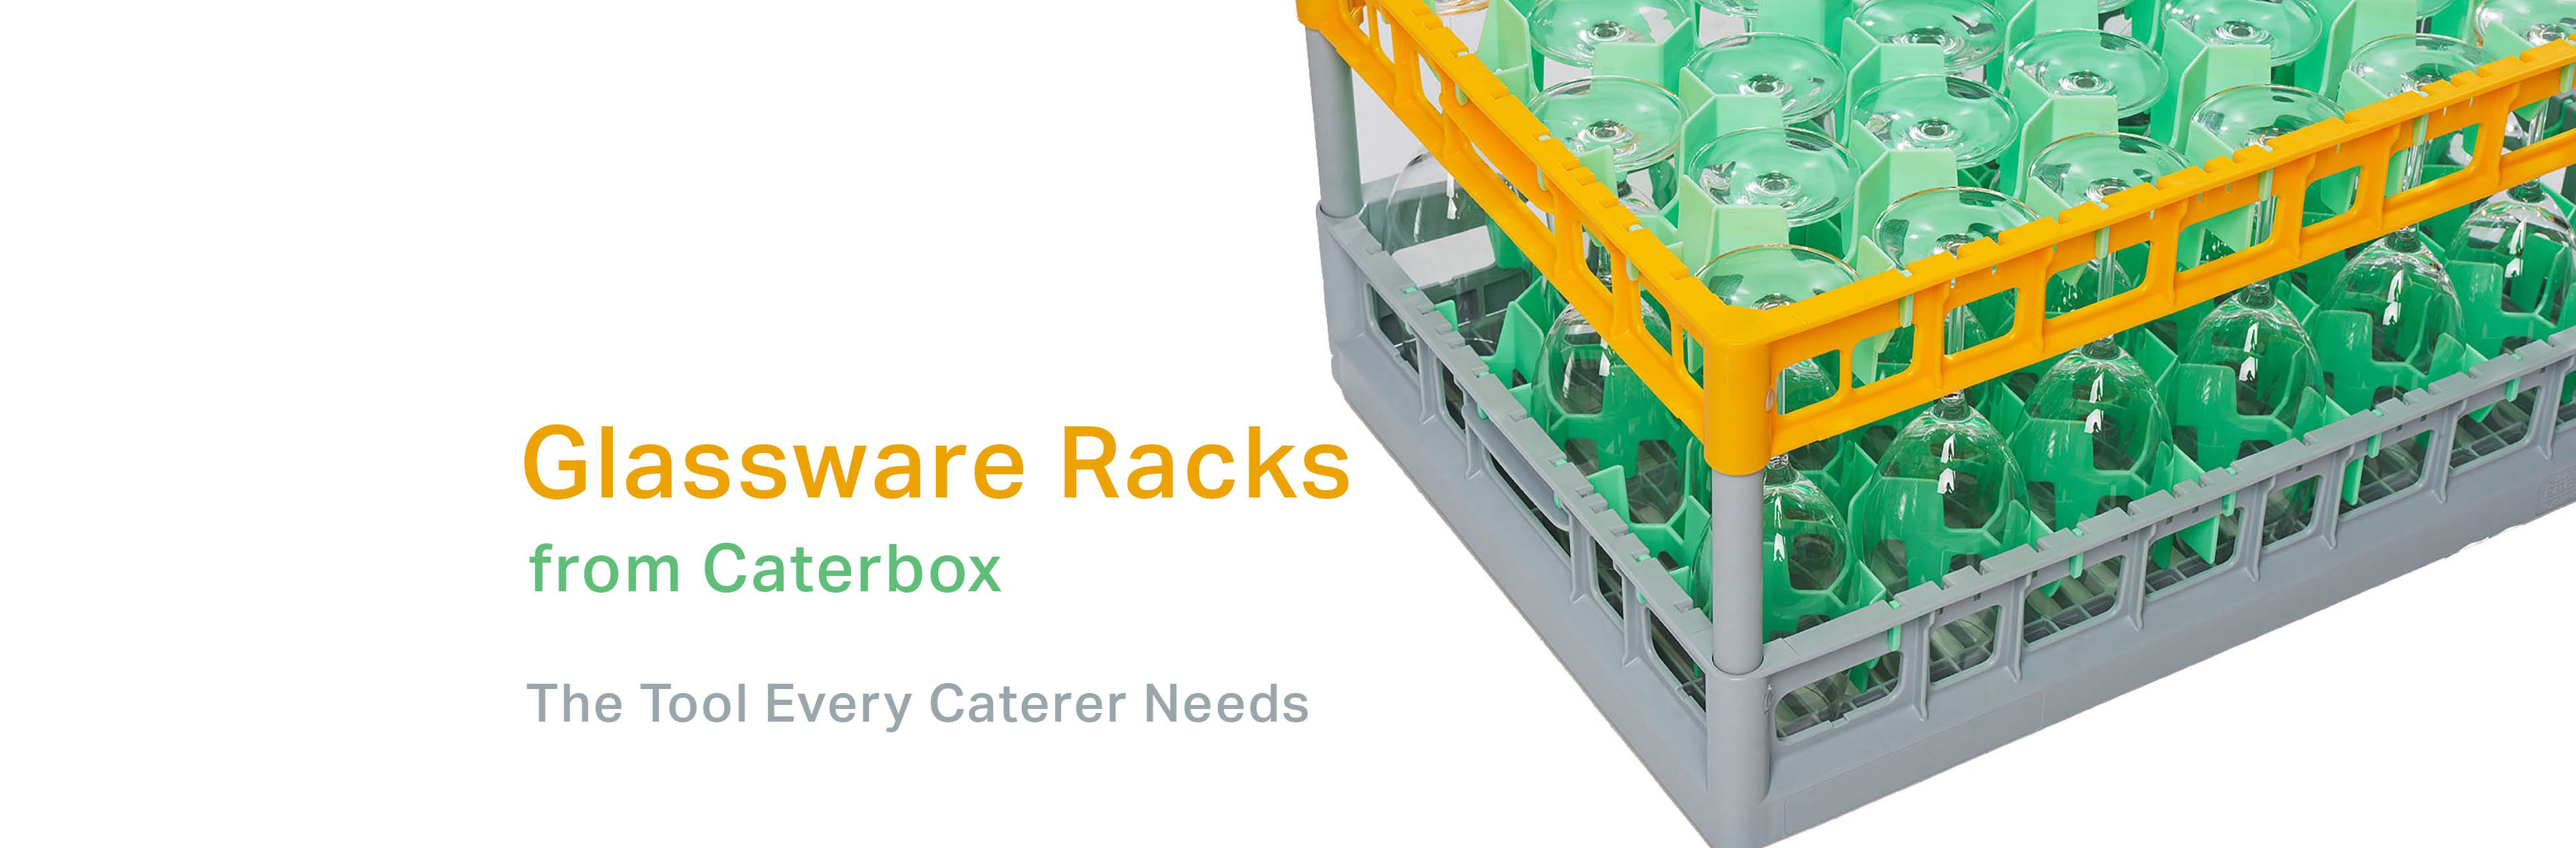 Glassware Racks from Caterbox, the Tool Every Caterer Needs